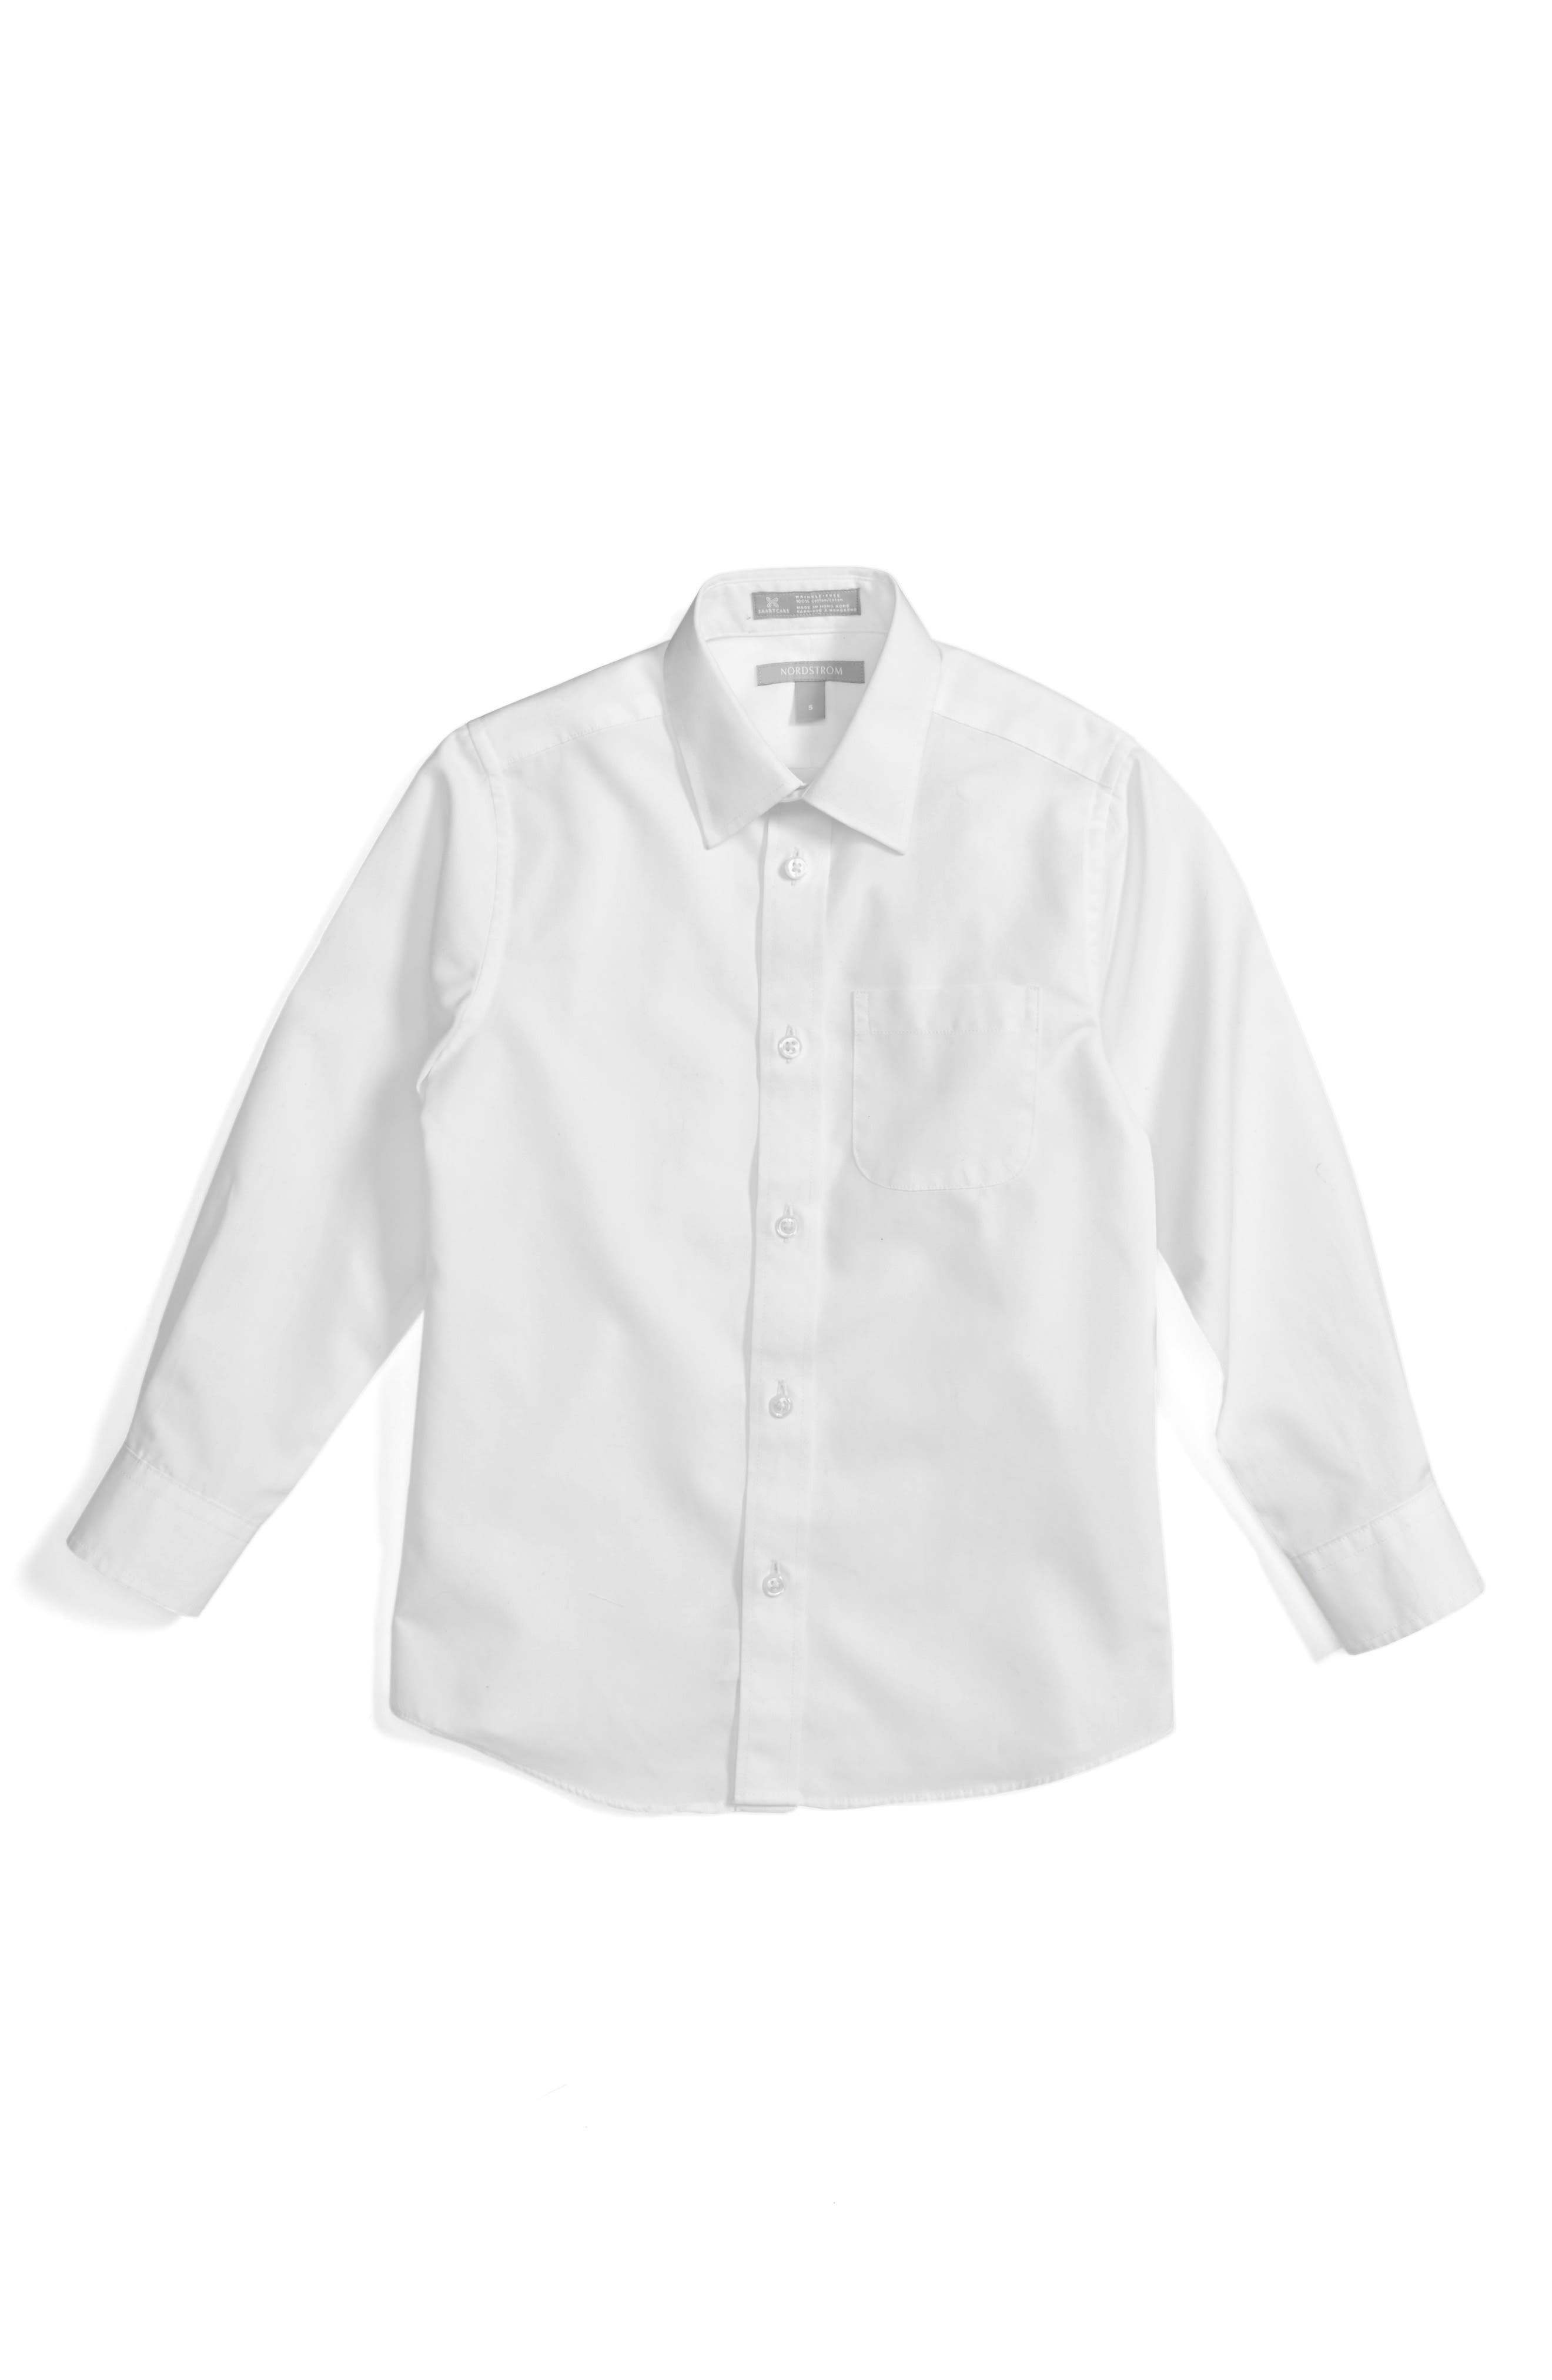 Smartcare<sup>™</sup> Dress Shirt,                             Alternate thumbnail 2, color,                             WHITE